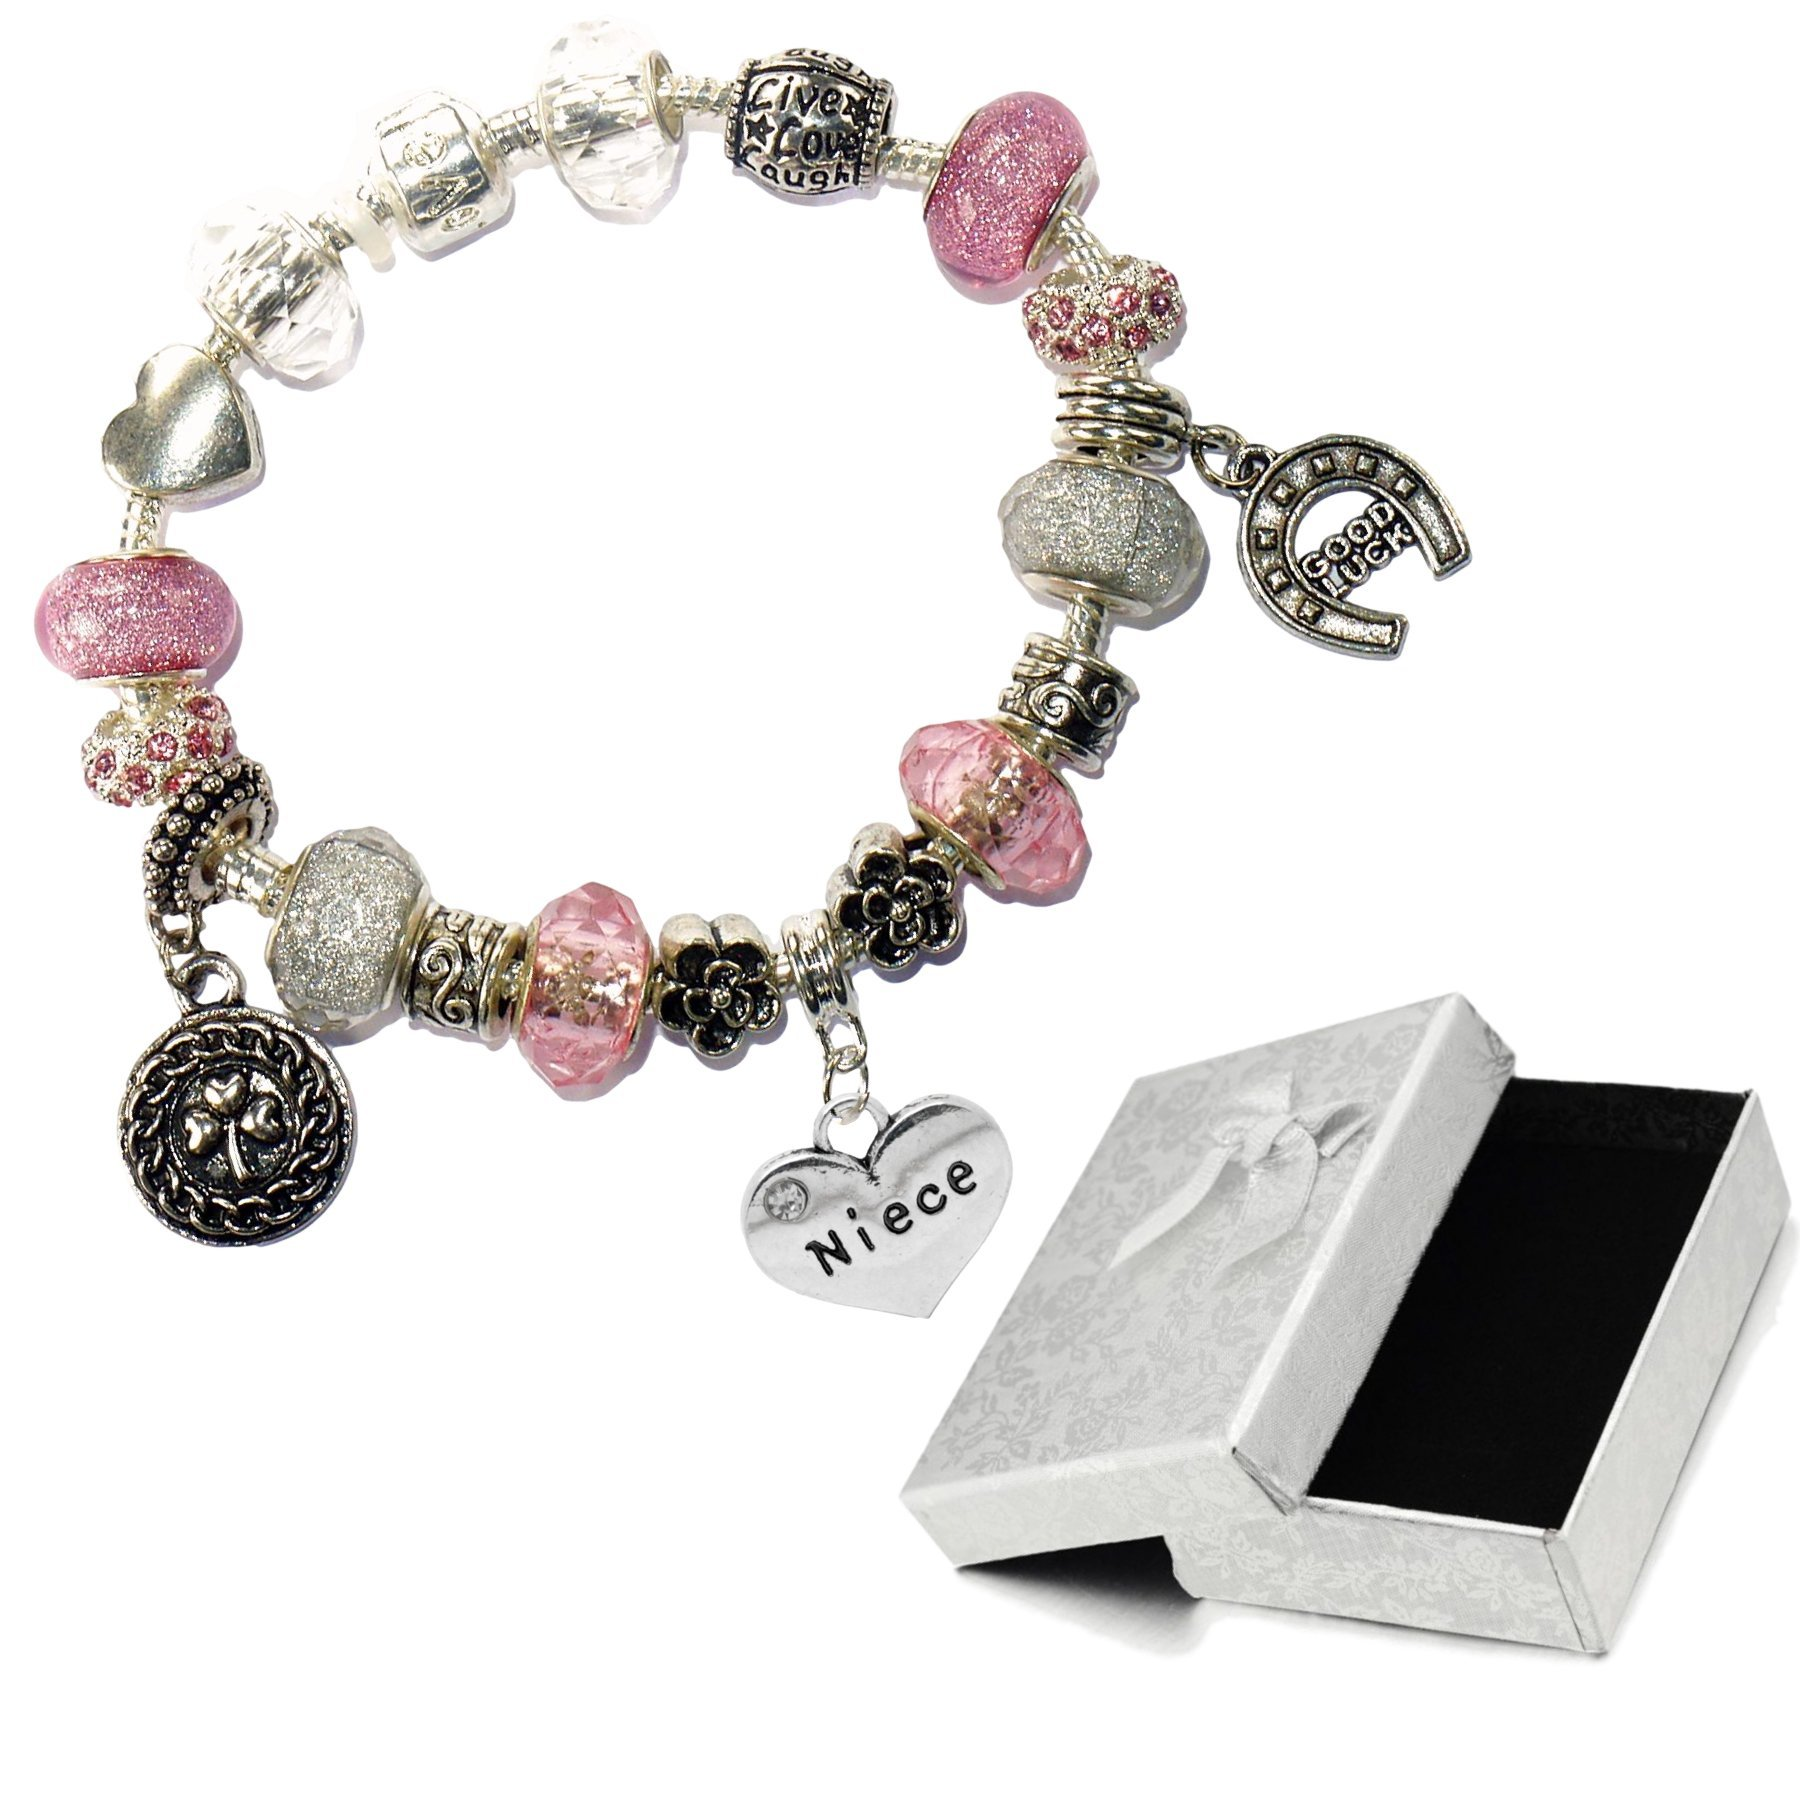 Charm Buddy Niece Pink Silver Crystal Good Luck Pandora Style Bracelet With Charms Gift Box